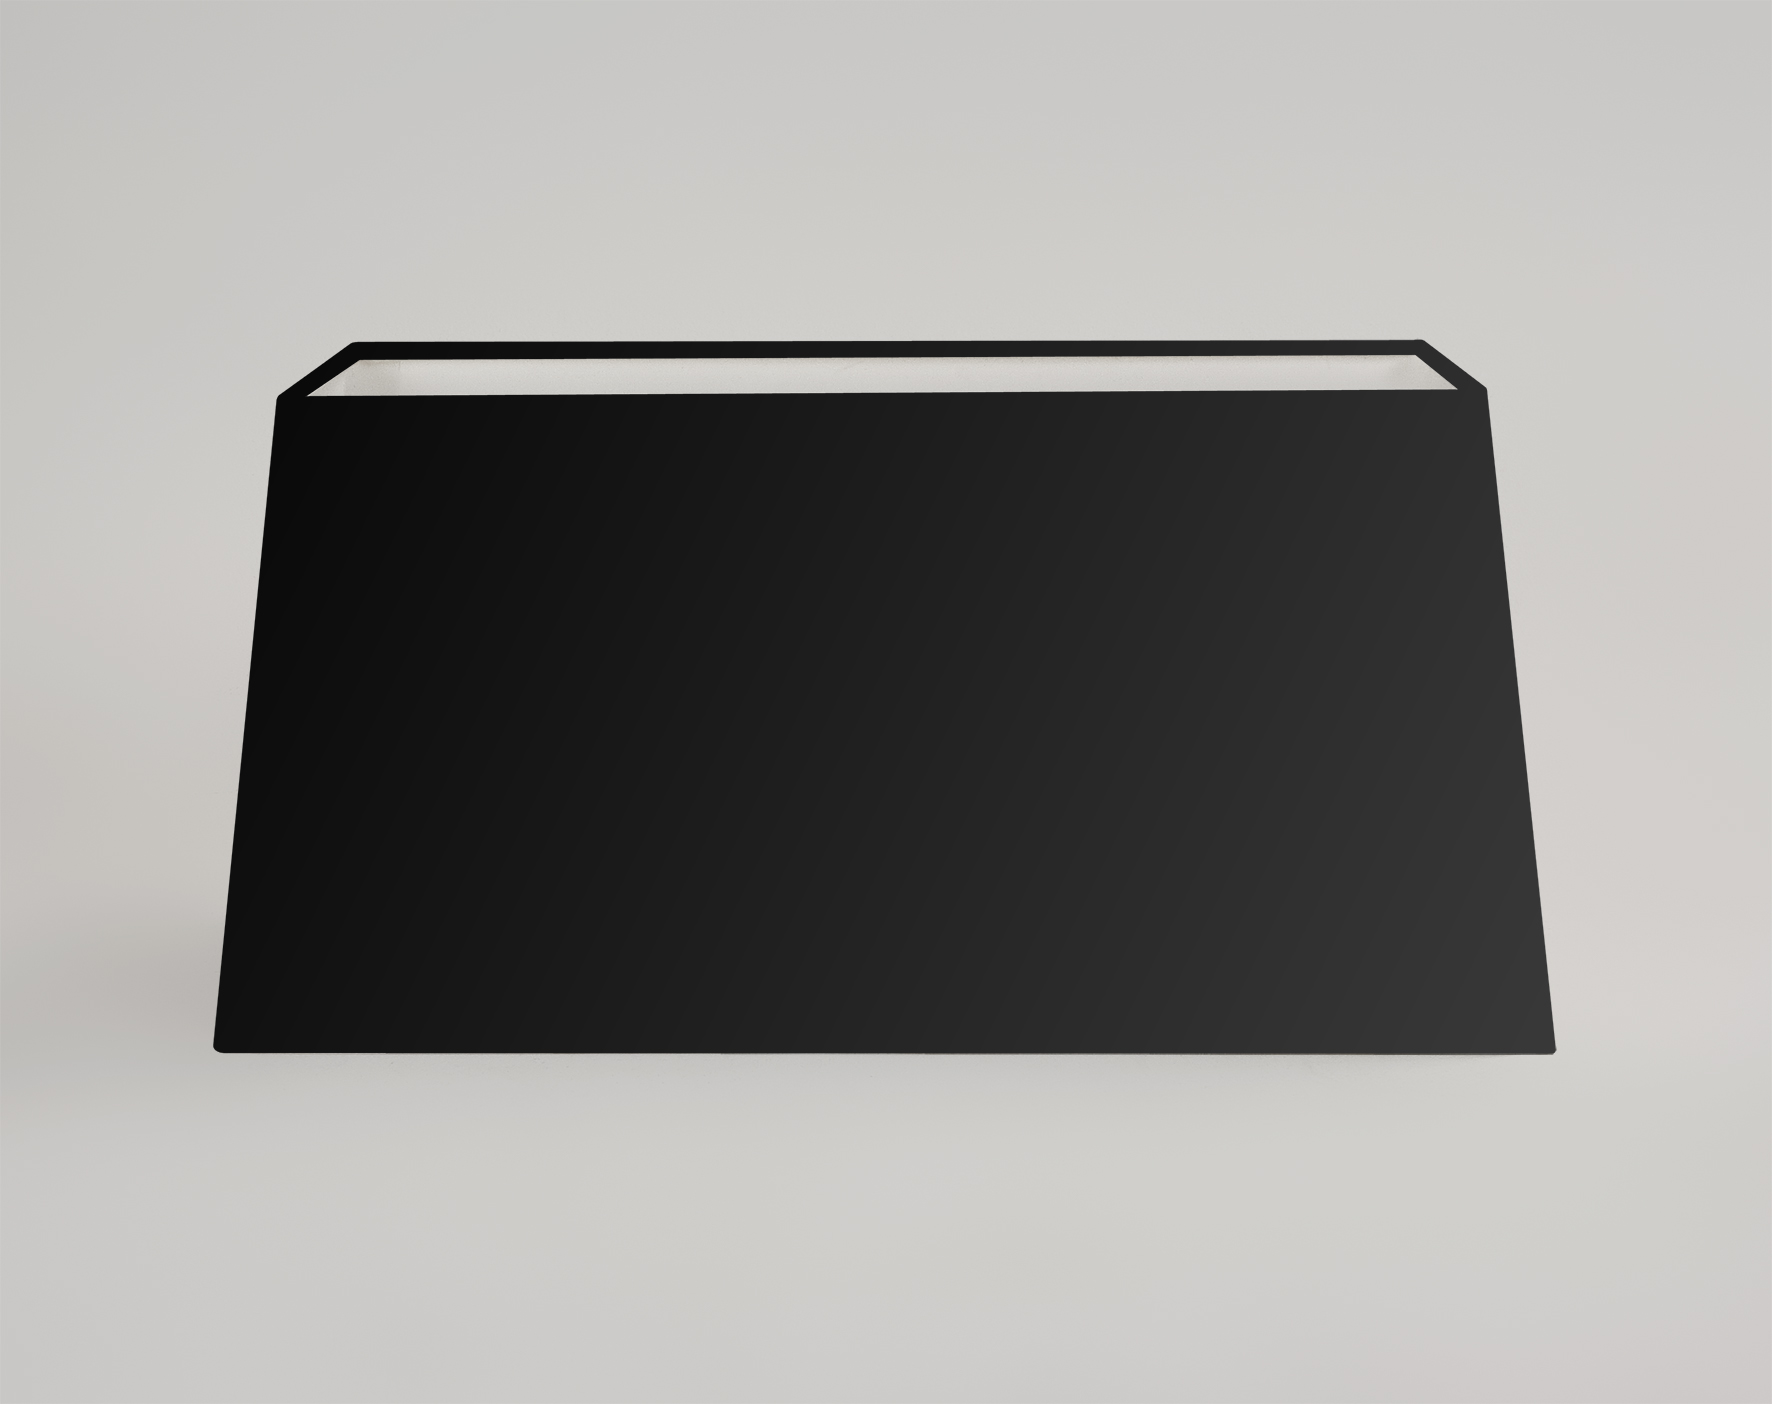 Black Rectangular Lamp Shades: Remarkable On Rectangular Lamp Shades Shade,Lighting